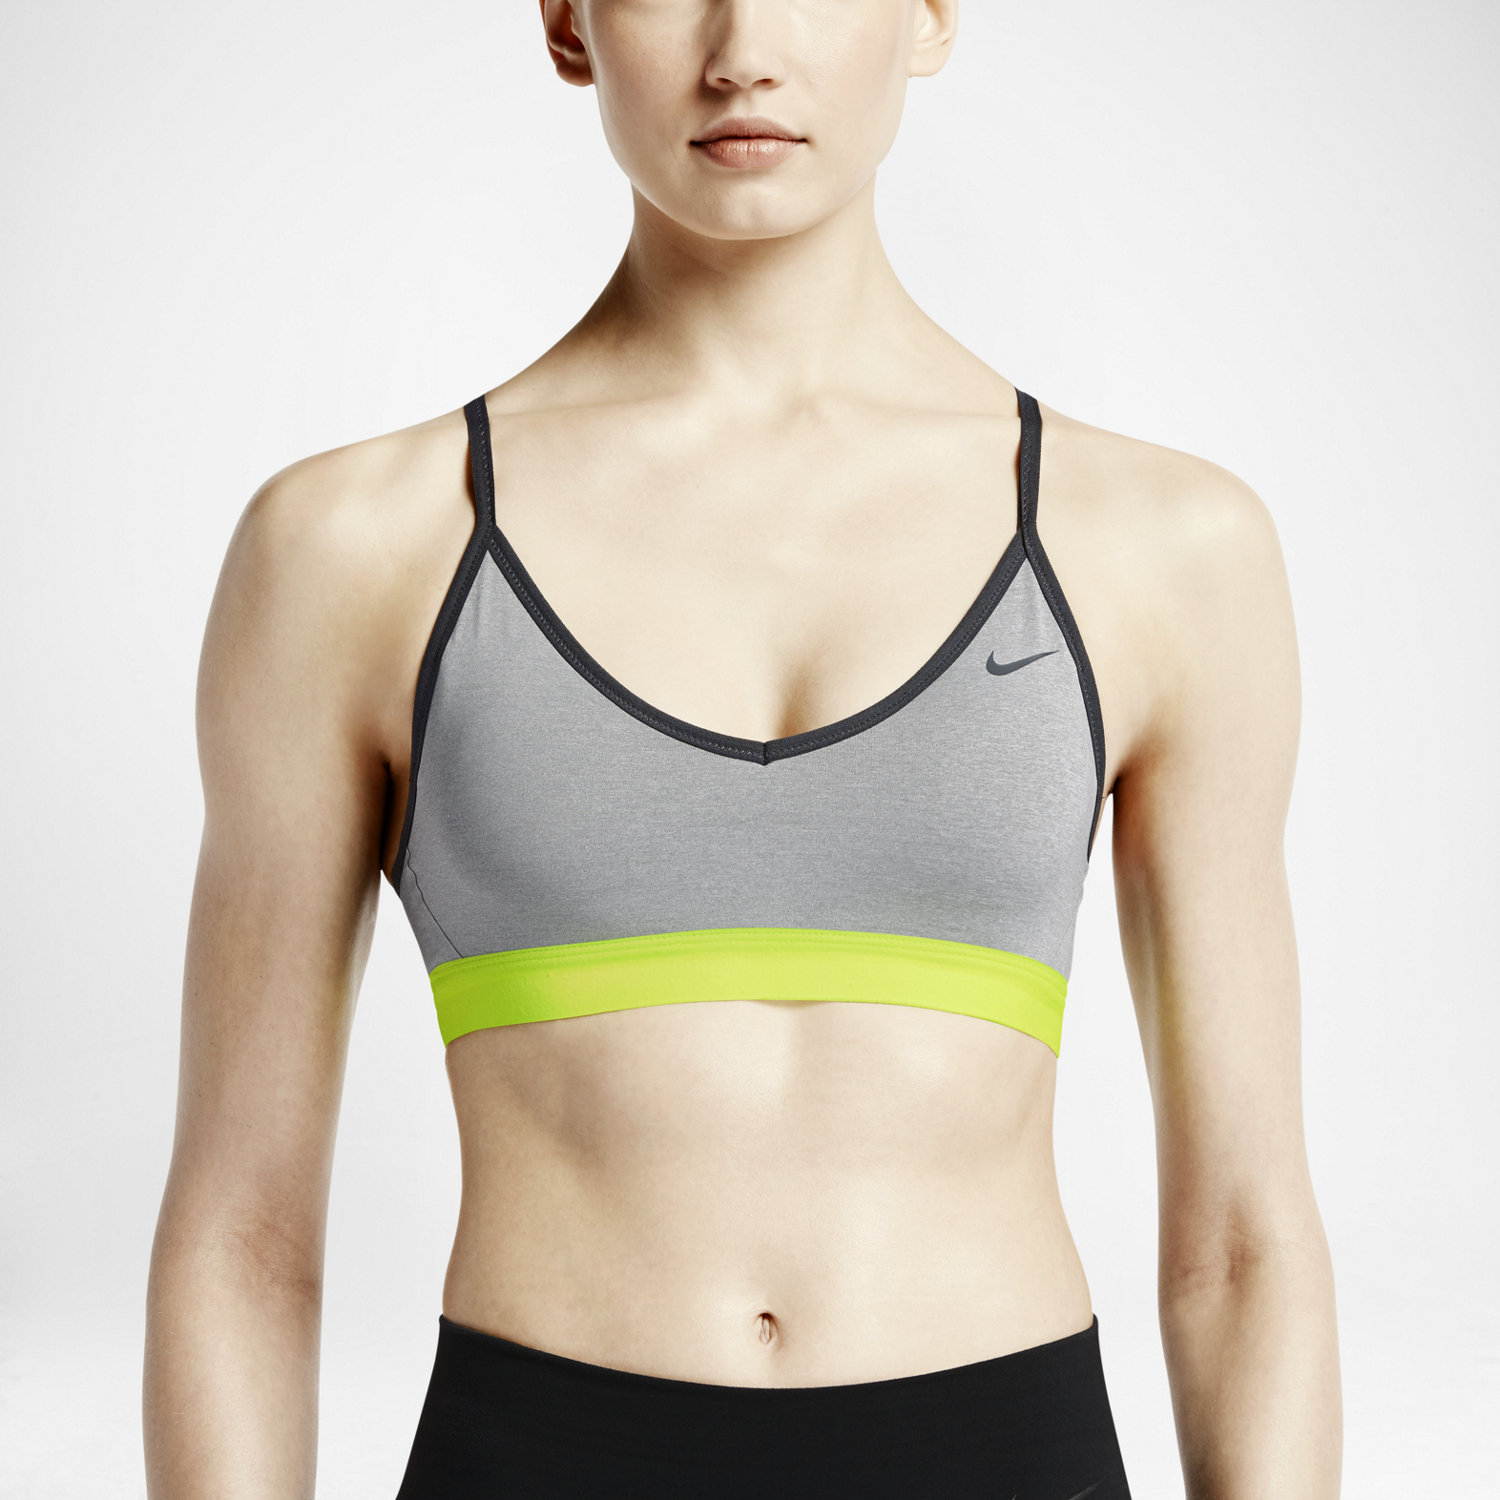 Nike Indy Women's Light Support Sports Bra. Nike.com